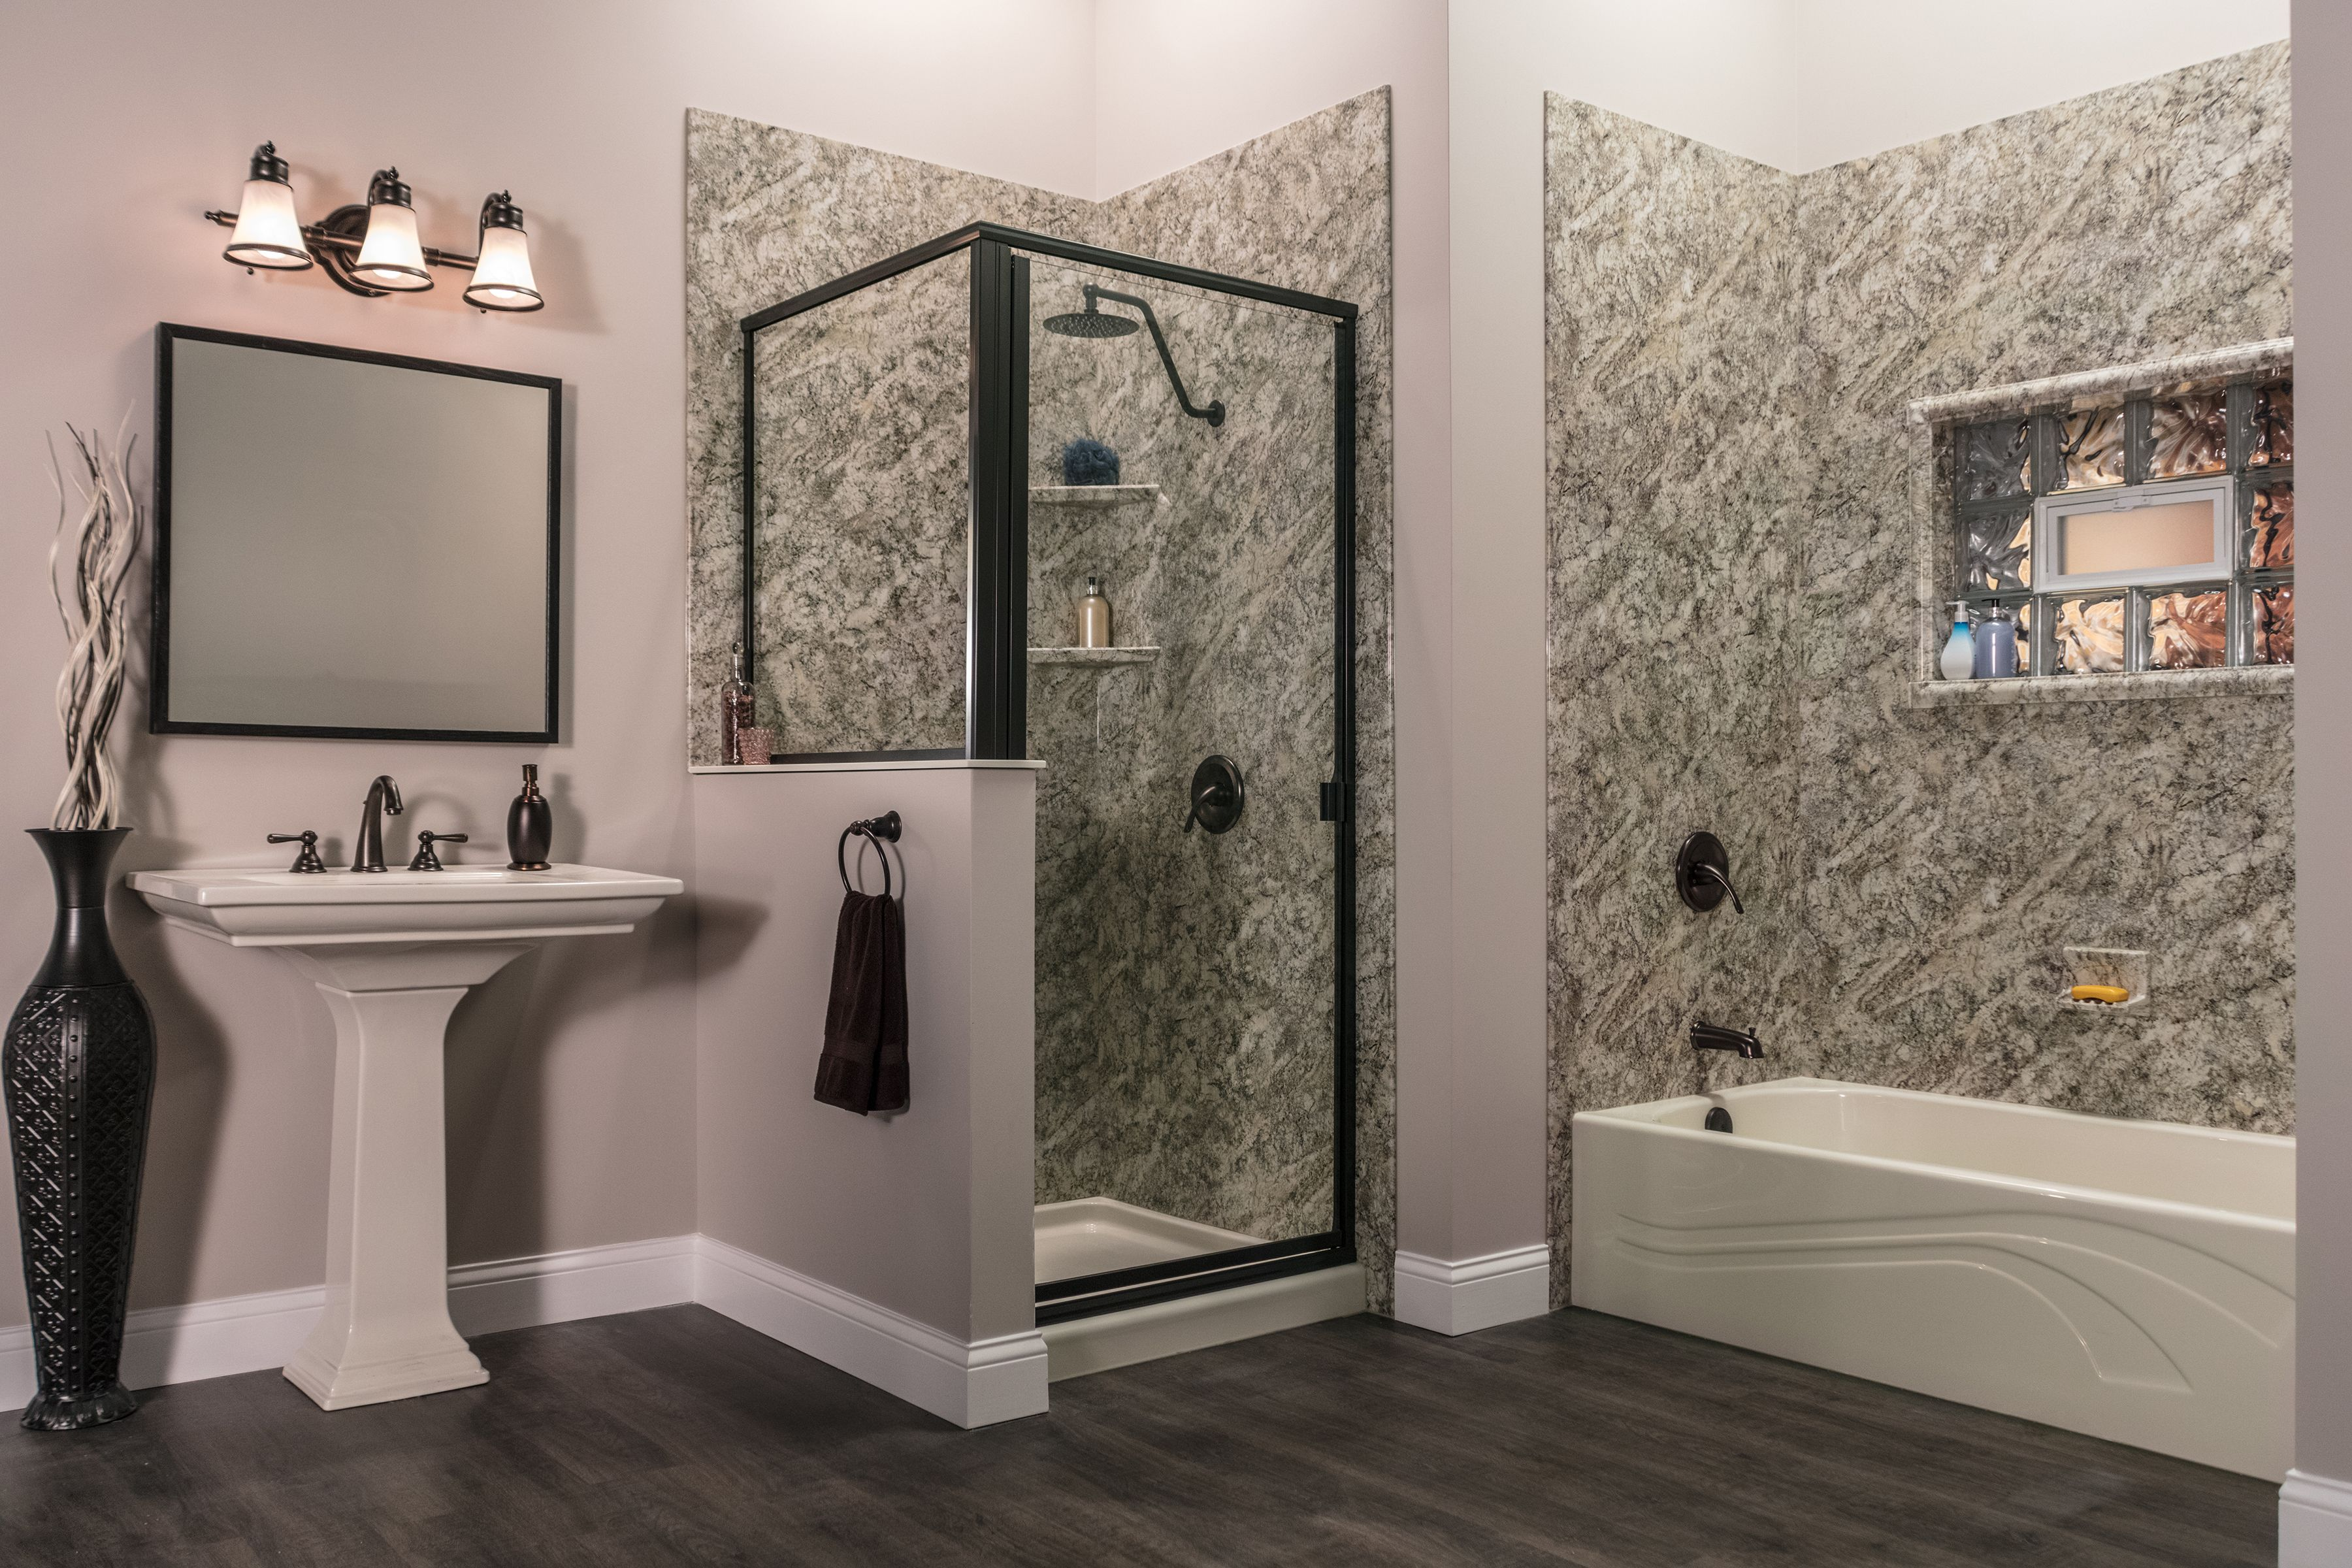 Premier Bathroom Design Platino Granite Wall Surrounds For Both A Shower And Bathtub